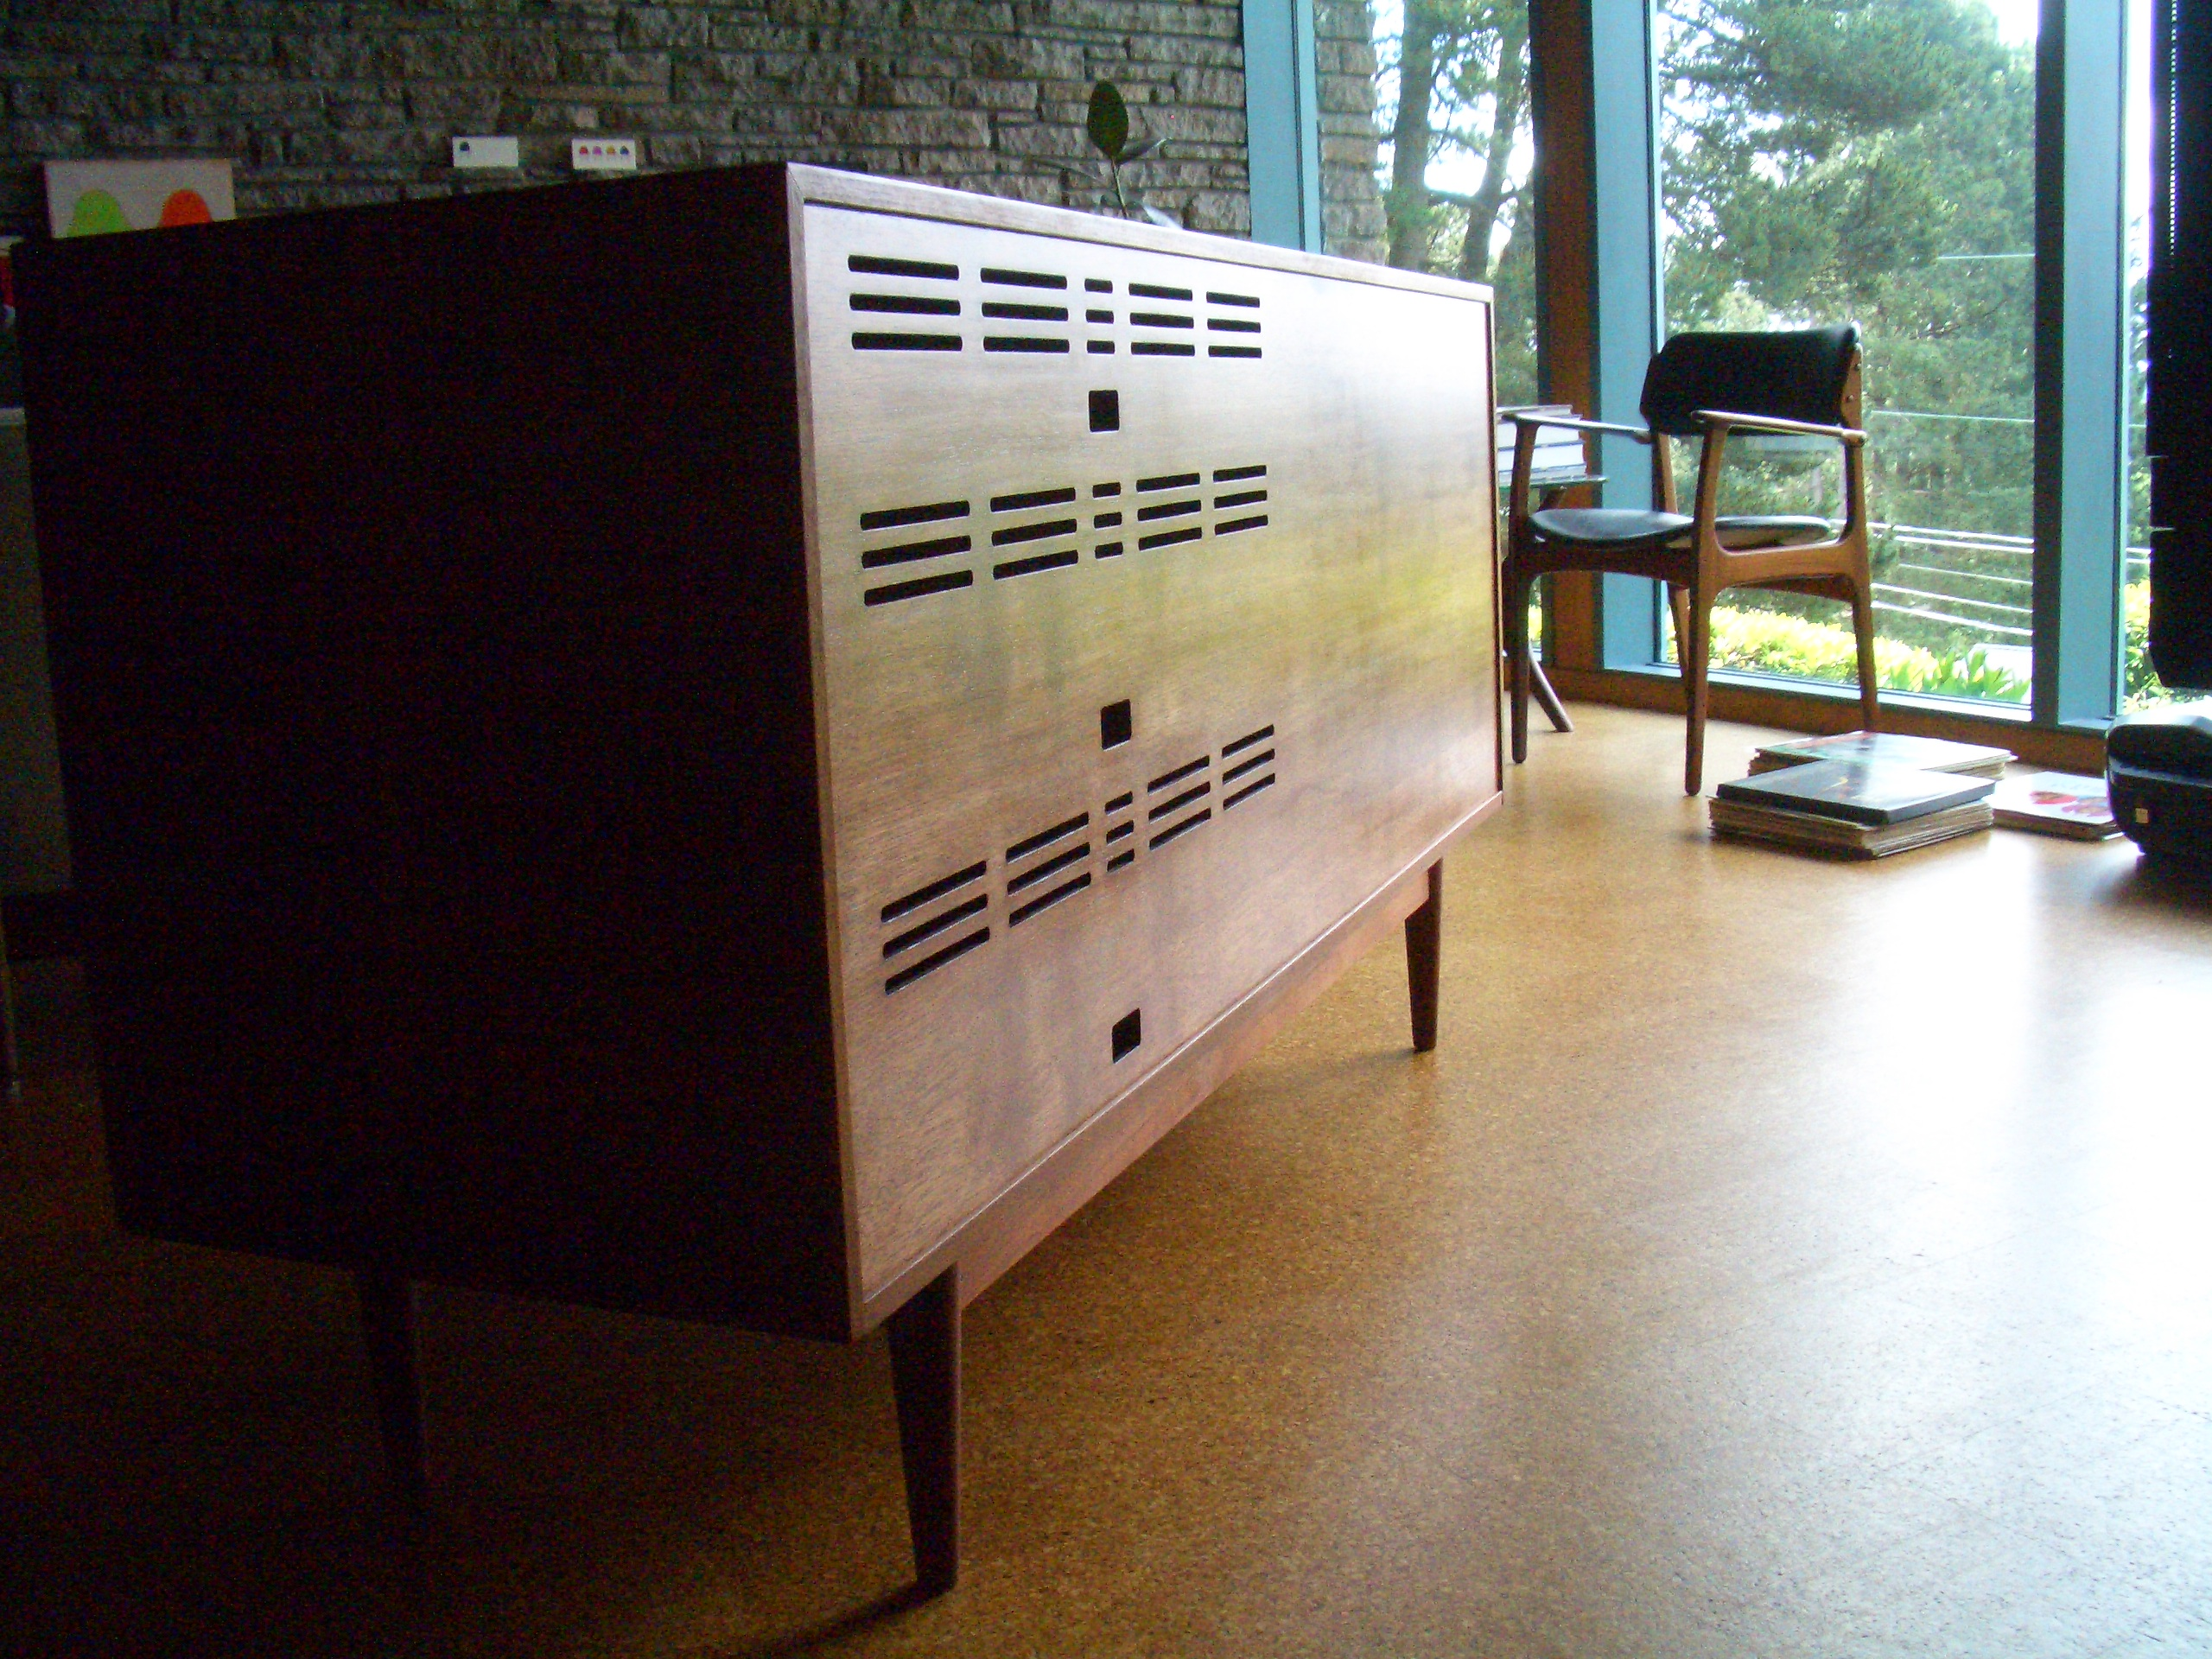 Vent panel reproduction